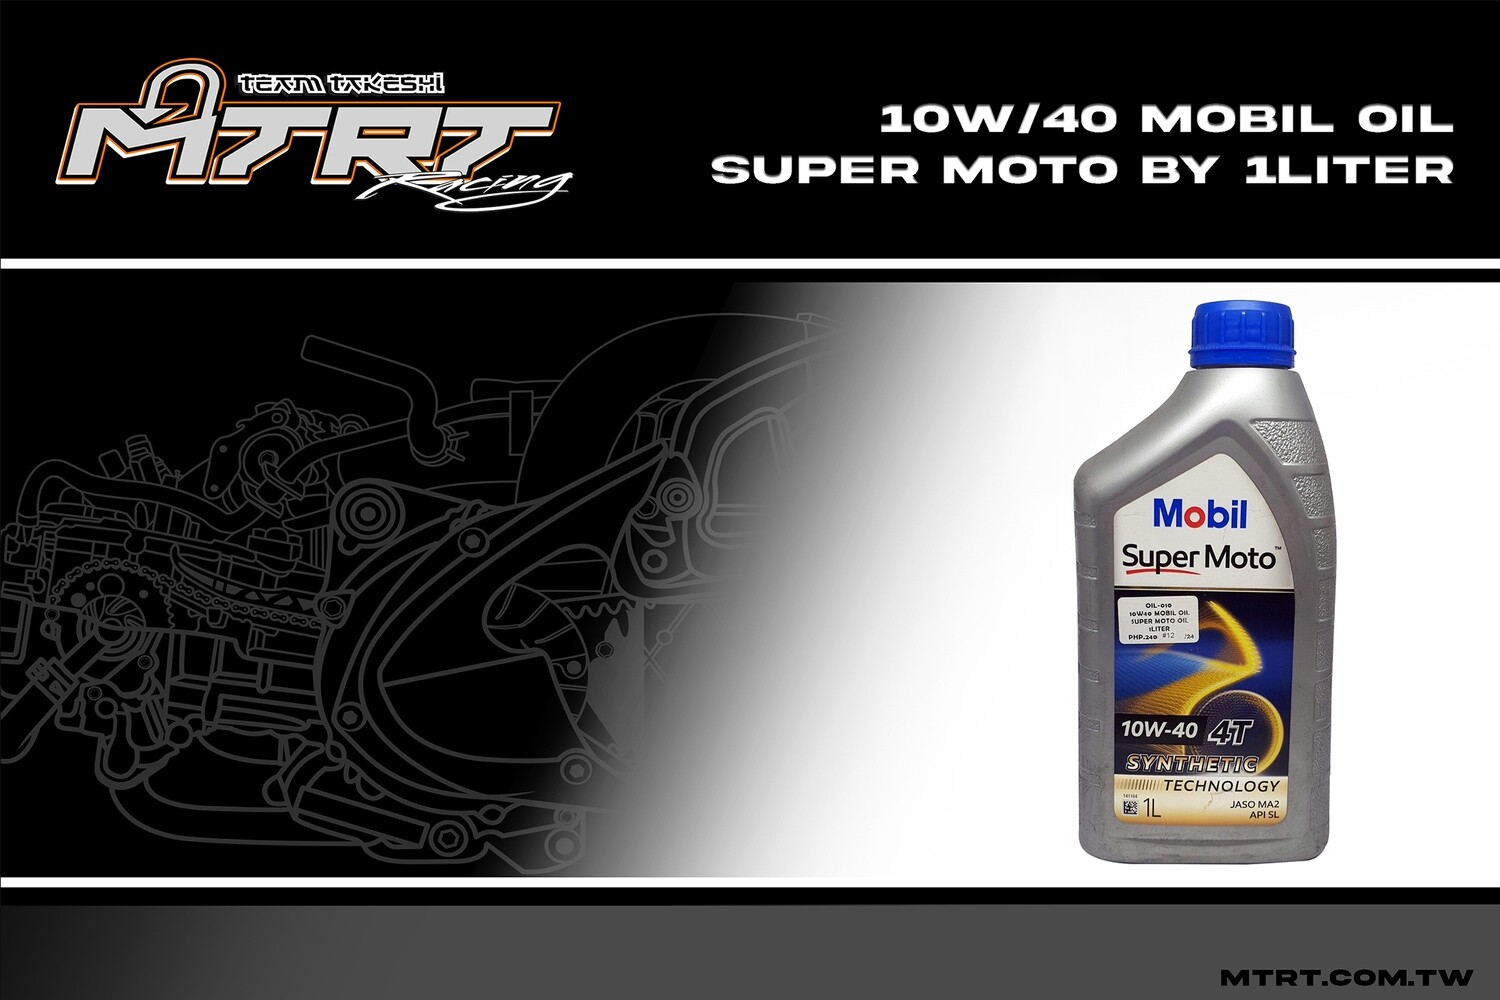 10W/40  MOBIL OIL SUPER MOTO by 1liter